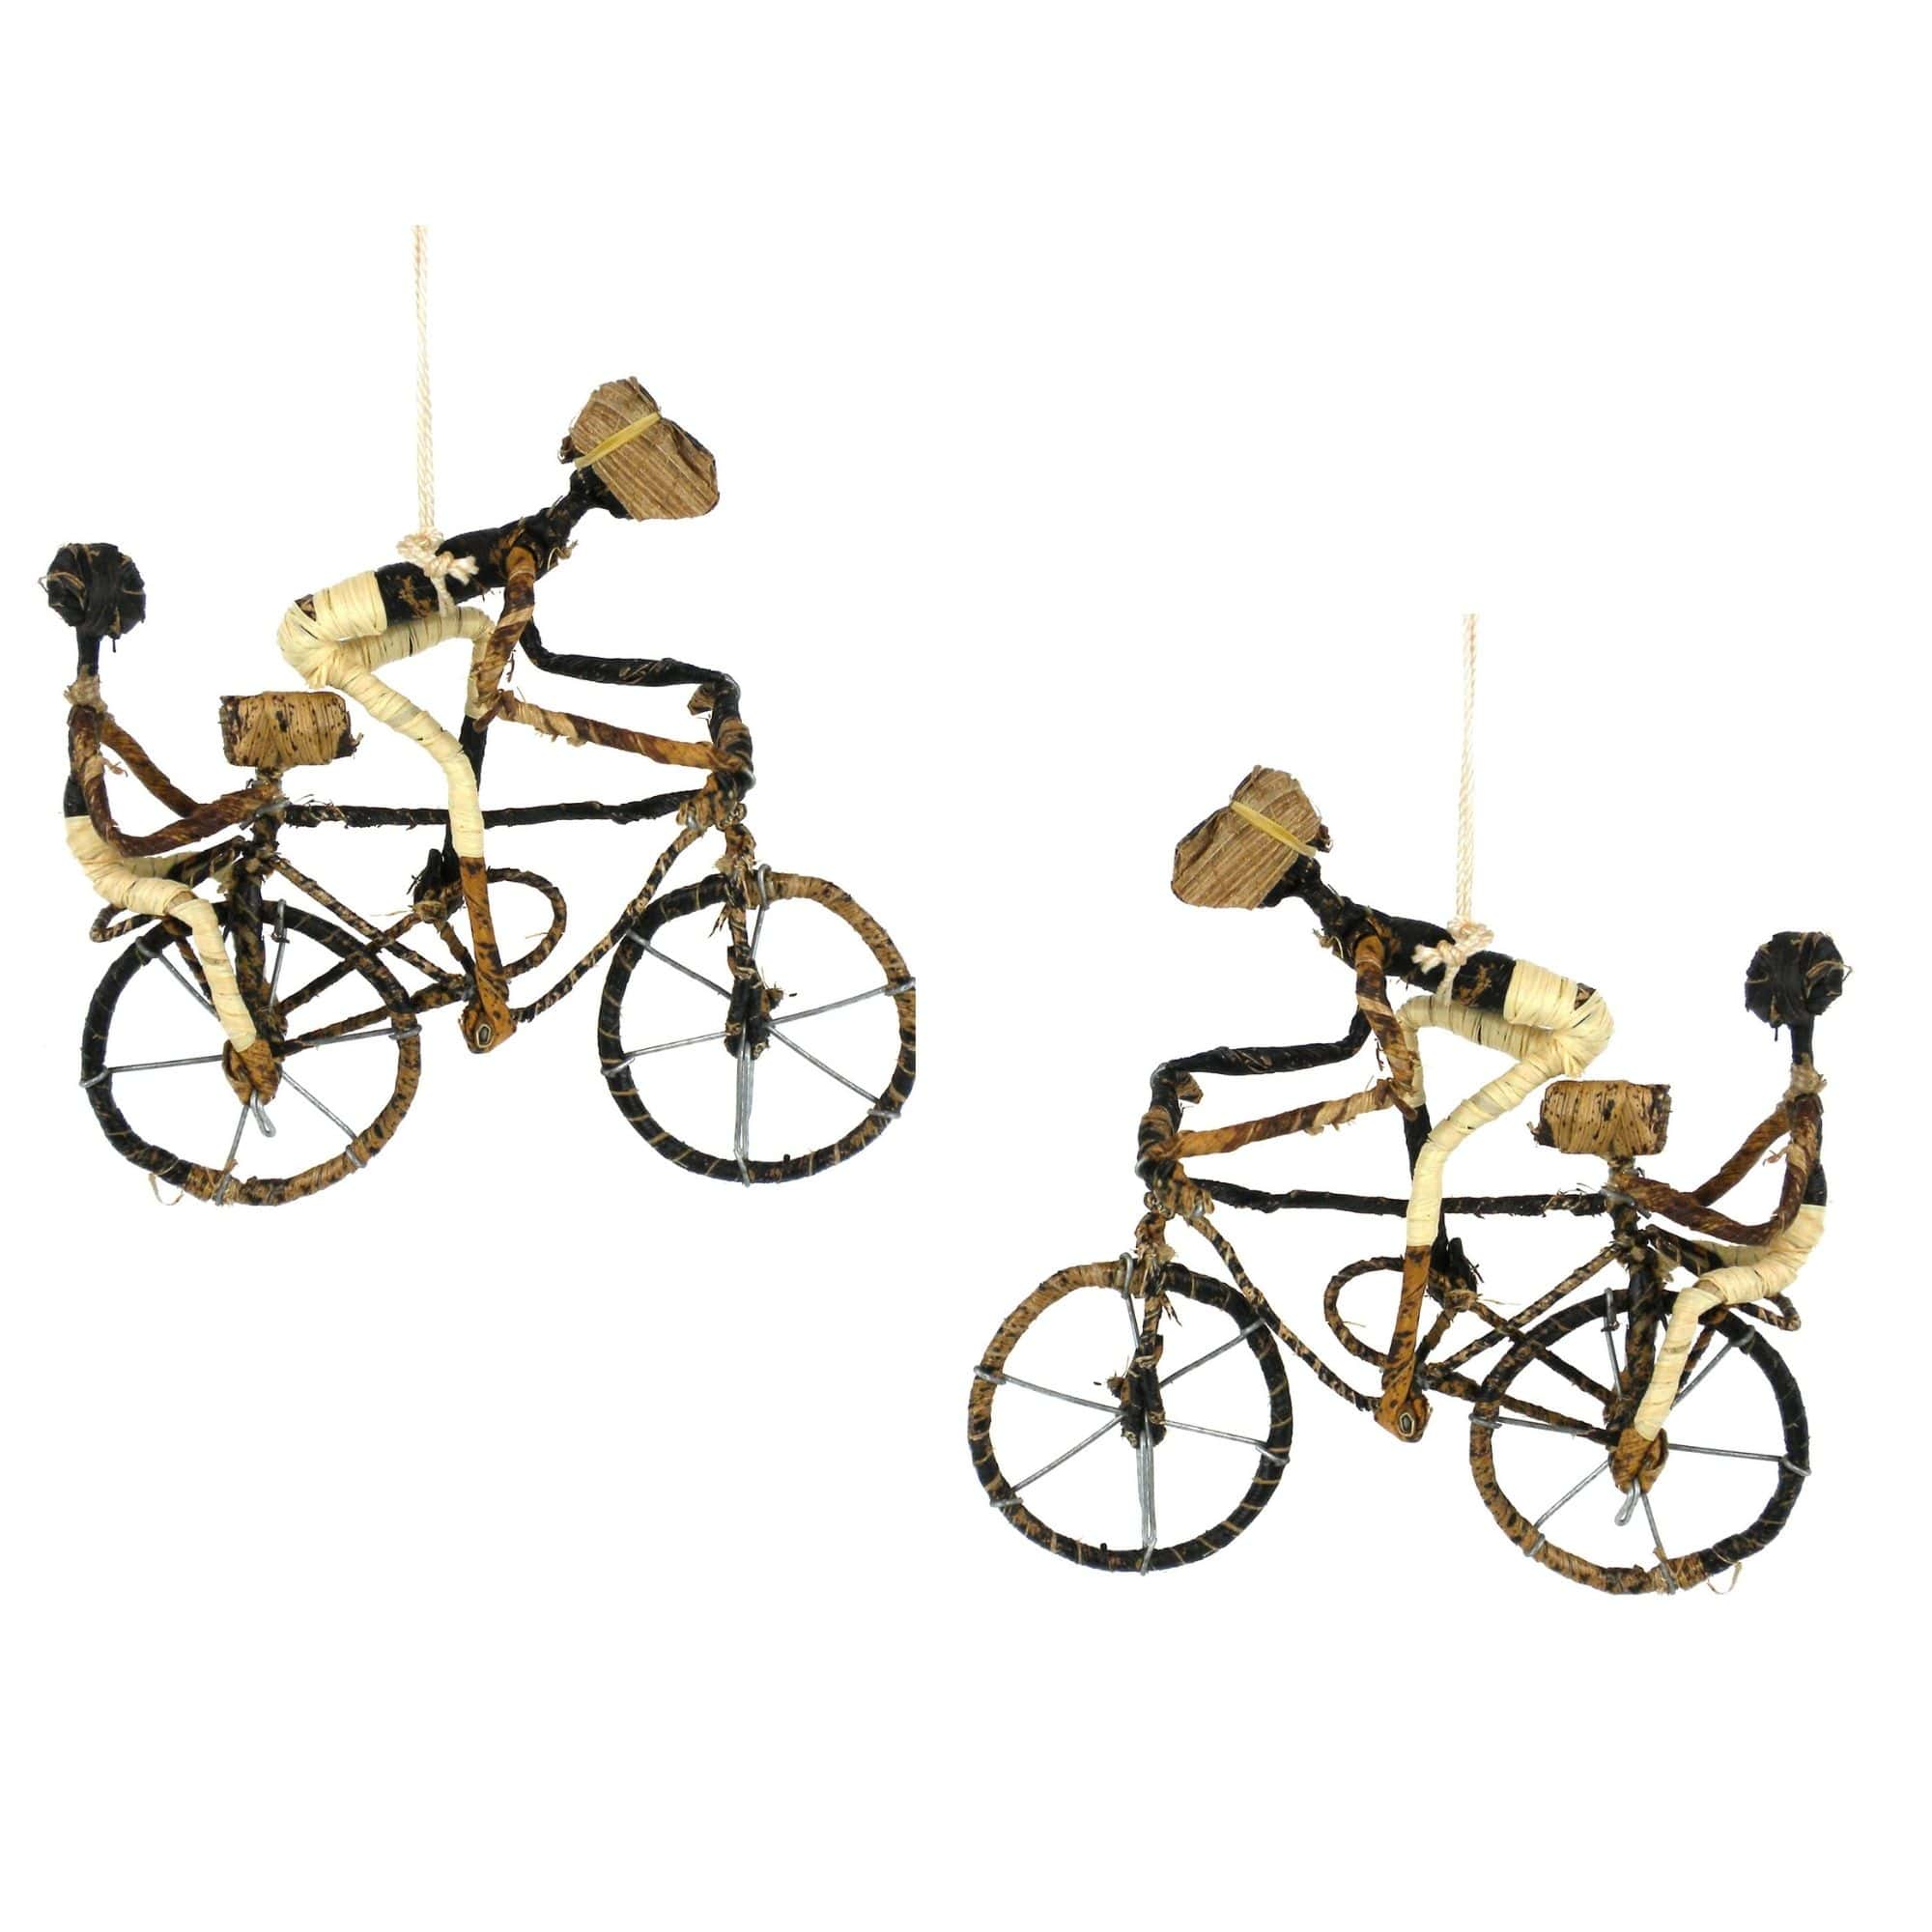 Banana Fiber Bicycle Ornament, Two Riders - Set of 2 Ornaments